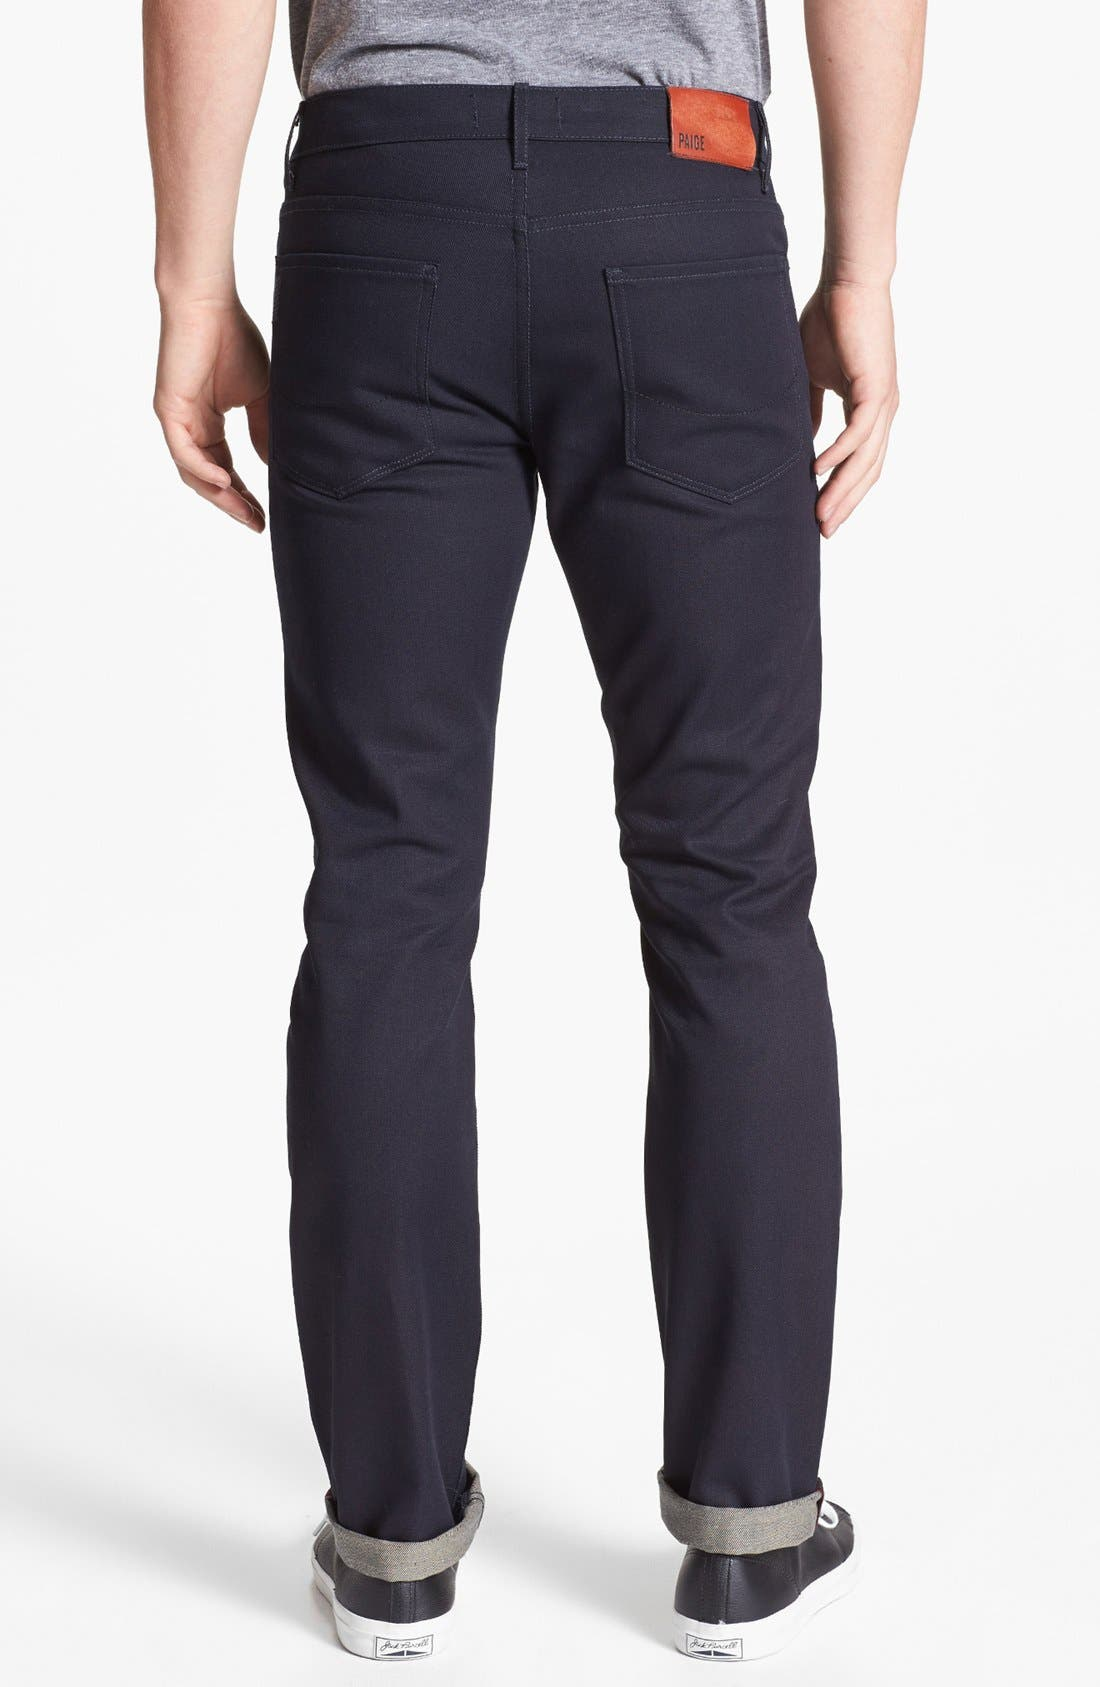 Alternate Image 1 Selected - PAIGE 'Federal' Skinny Fit Selvedge Jeans (Eco Raw)